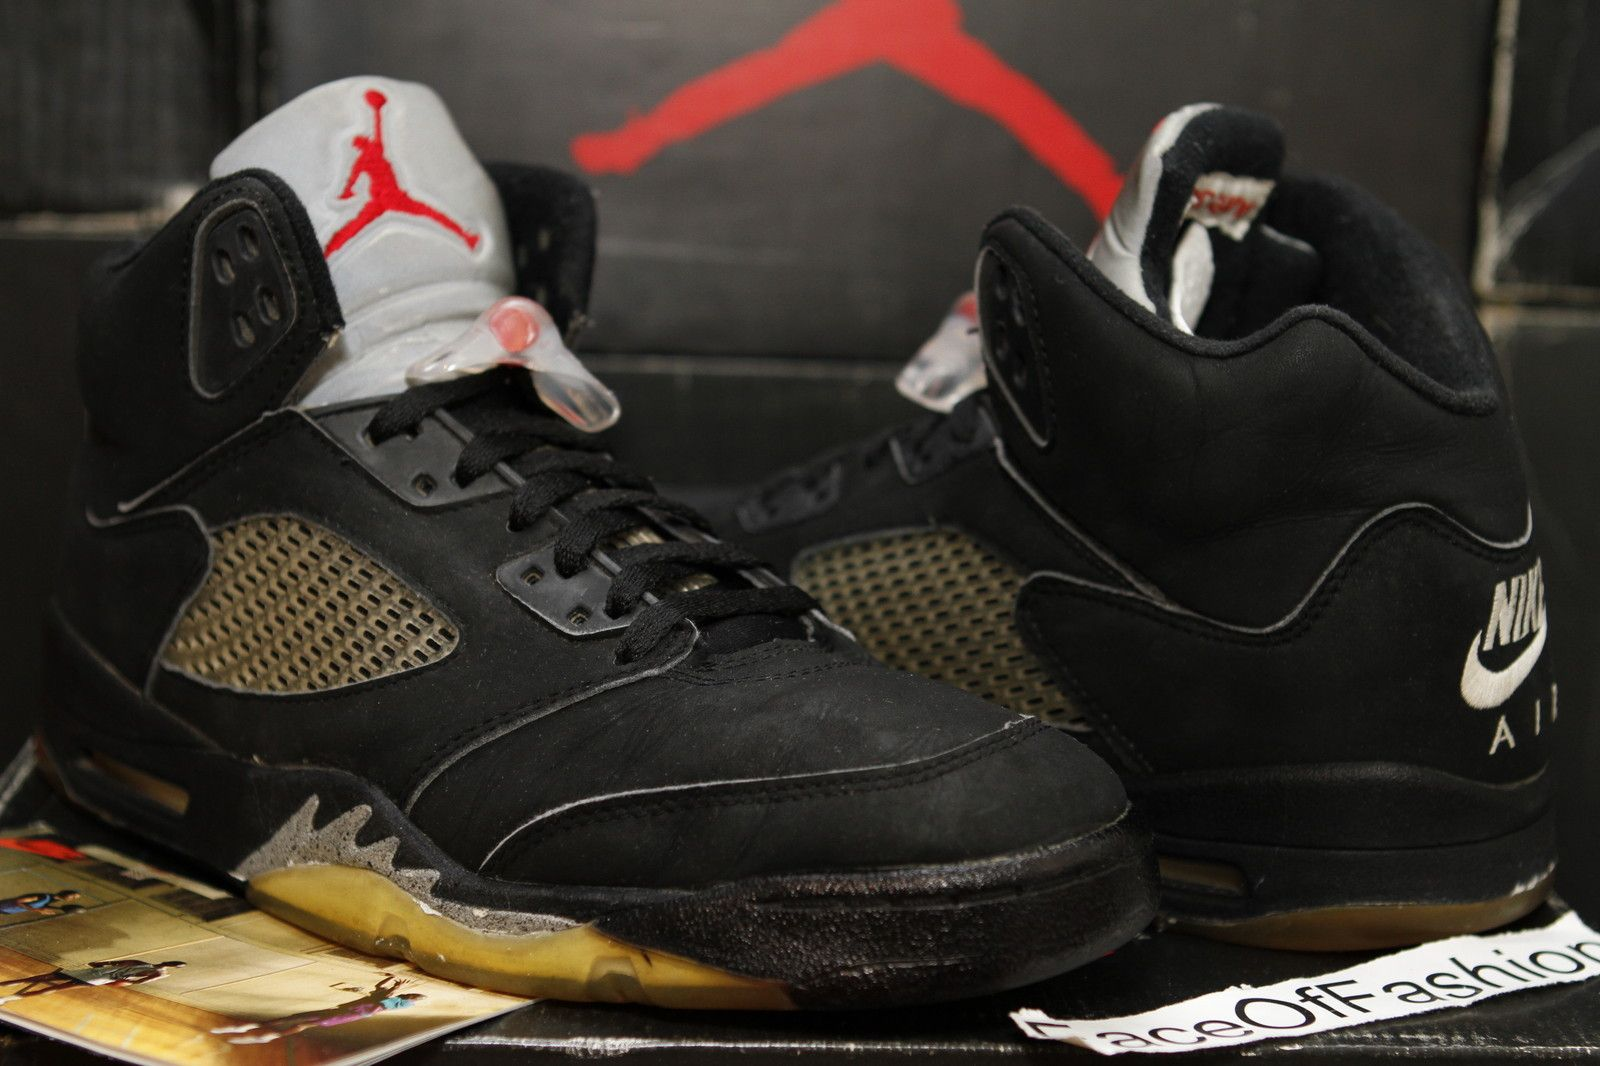 dad39d7e2c7d9d 1990 NIKE AIR JORDAN V 5 BLACK BLACK METALLIC SILVER ORIGINAL OG ...